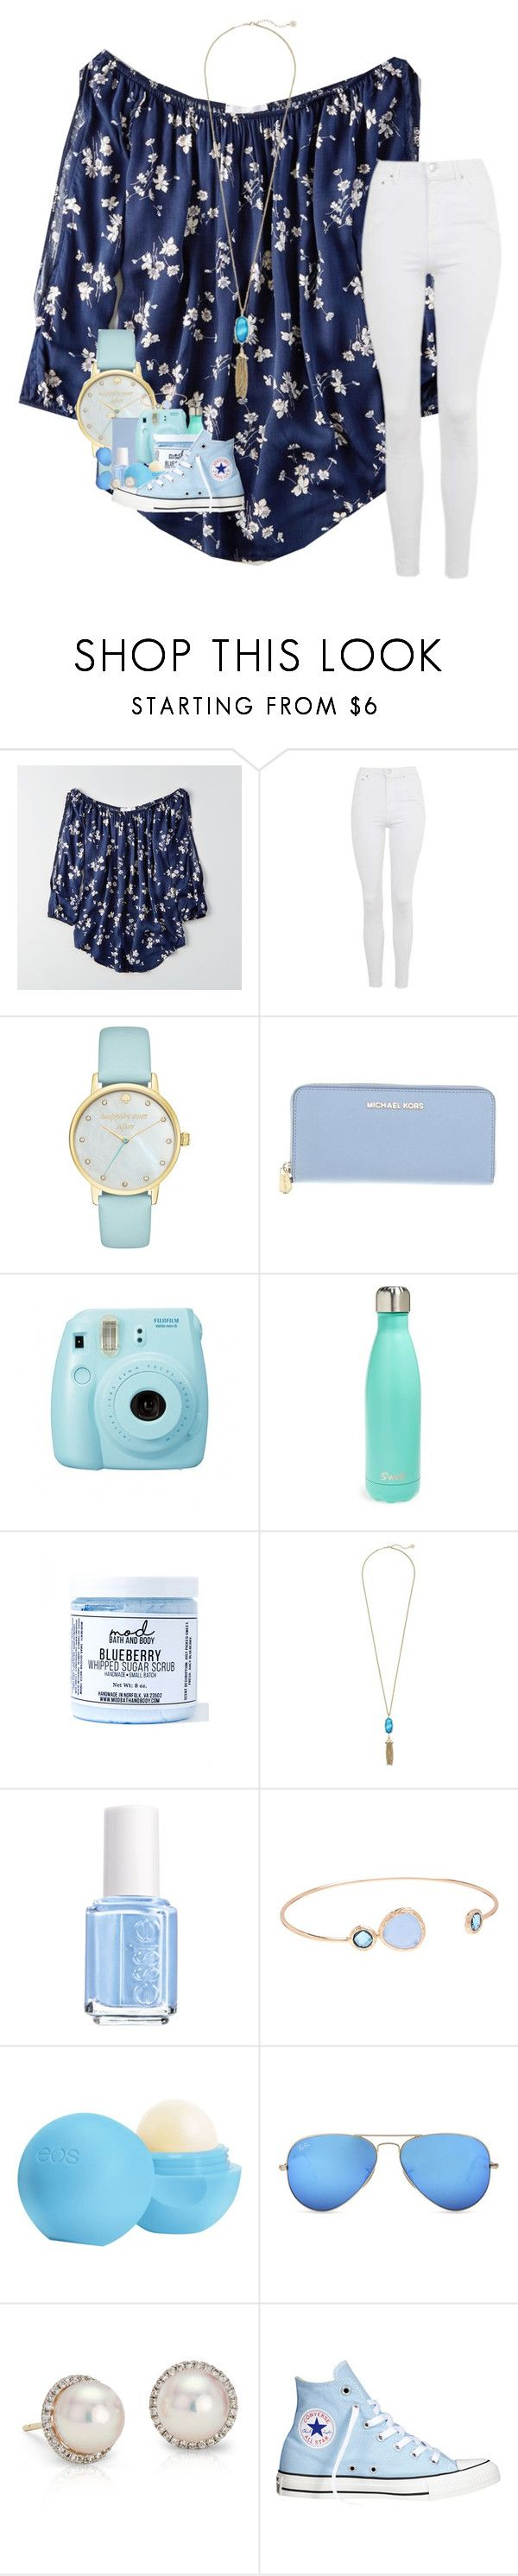 """~blue as the tears that comes down my face~"" by ajgswim on Polyvore featuring American Eagle Outfitters, Topshop, Kate Spade, Michael Kors, Fuji, S'well, Mod Bath and Body, Kendra Scott, Essie and Flint & Mortar"